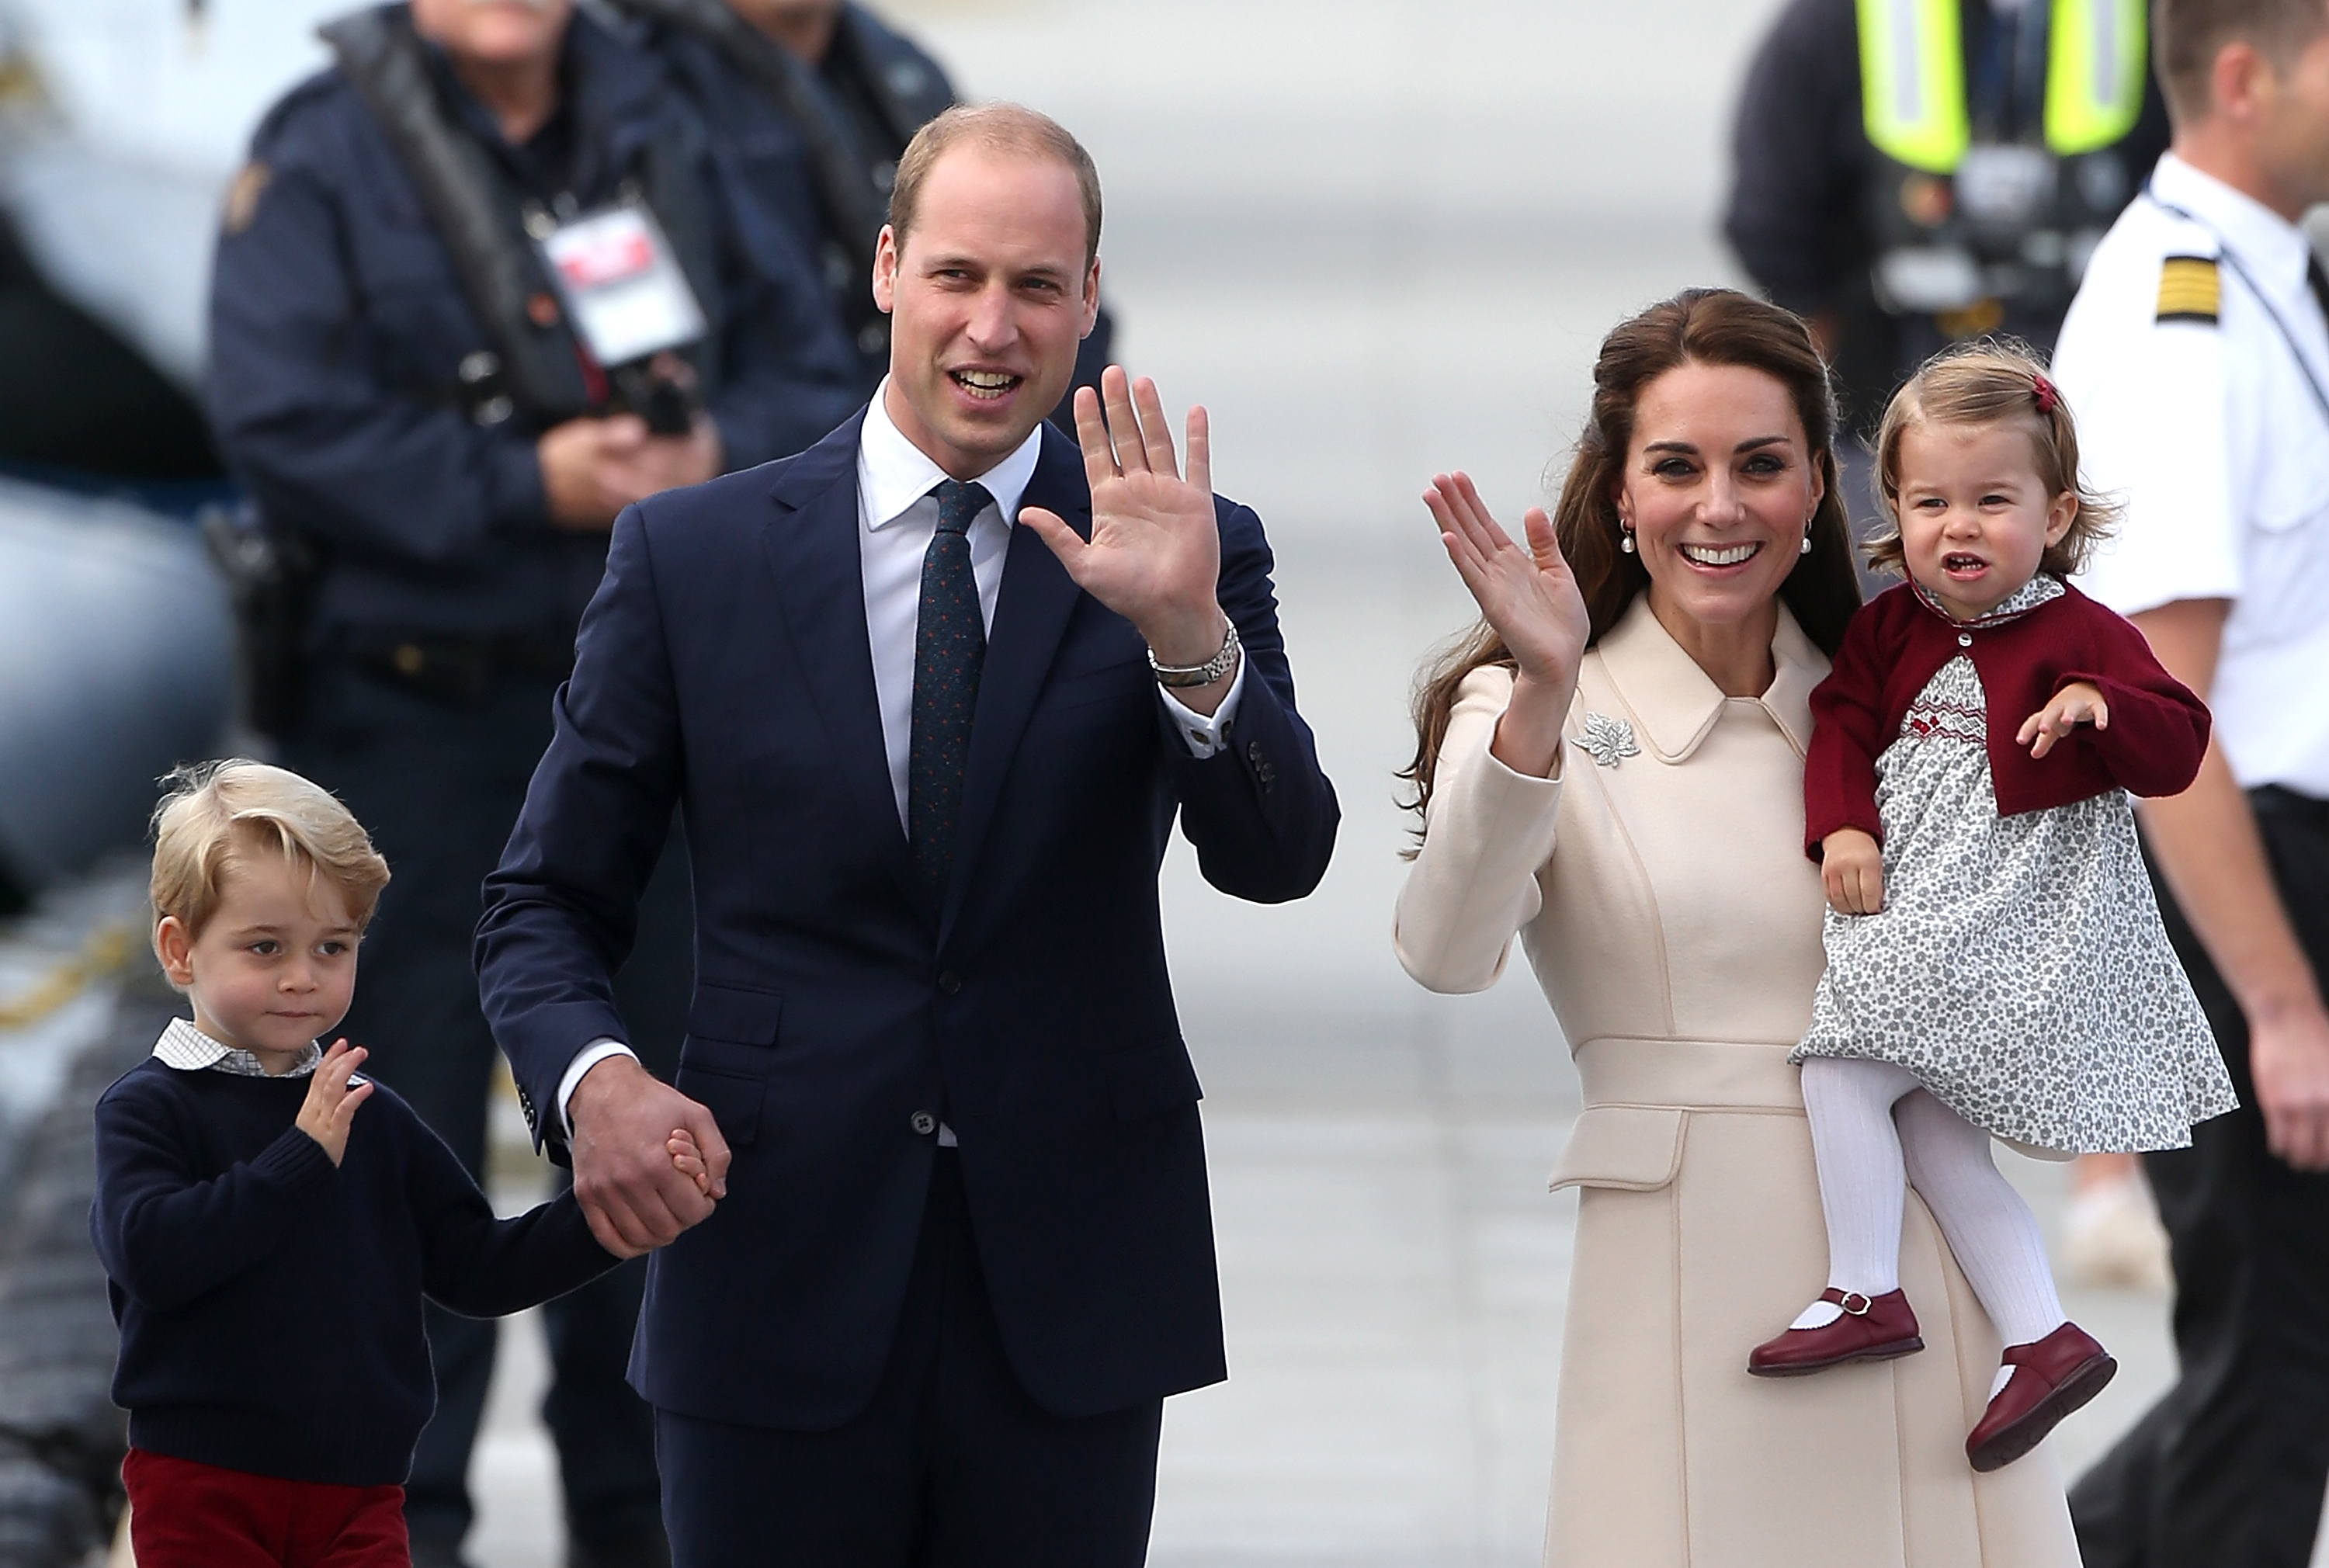 Prince William and Kate Middleton have been teaching their children about homelessness